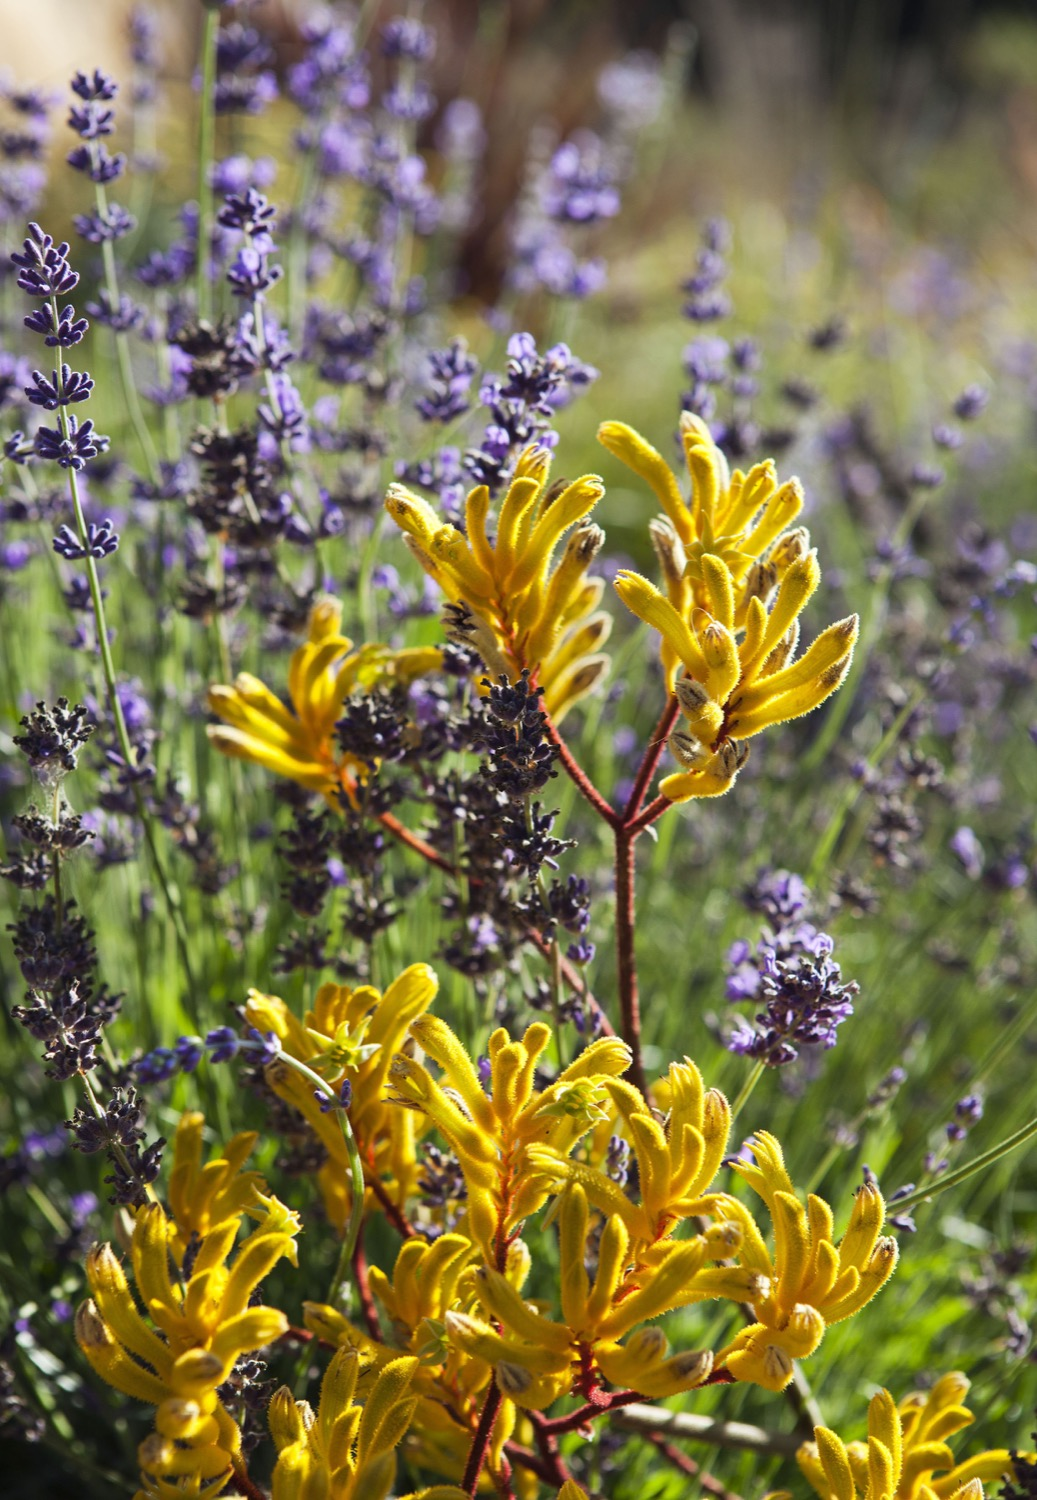 Lavender provides fragrence and color throughout the garden.